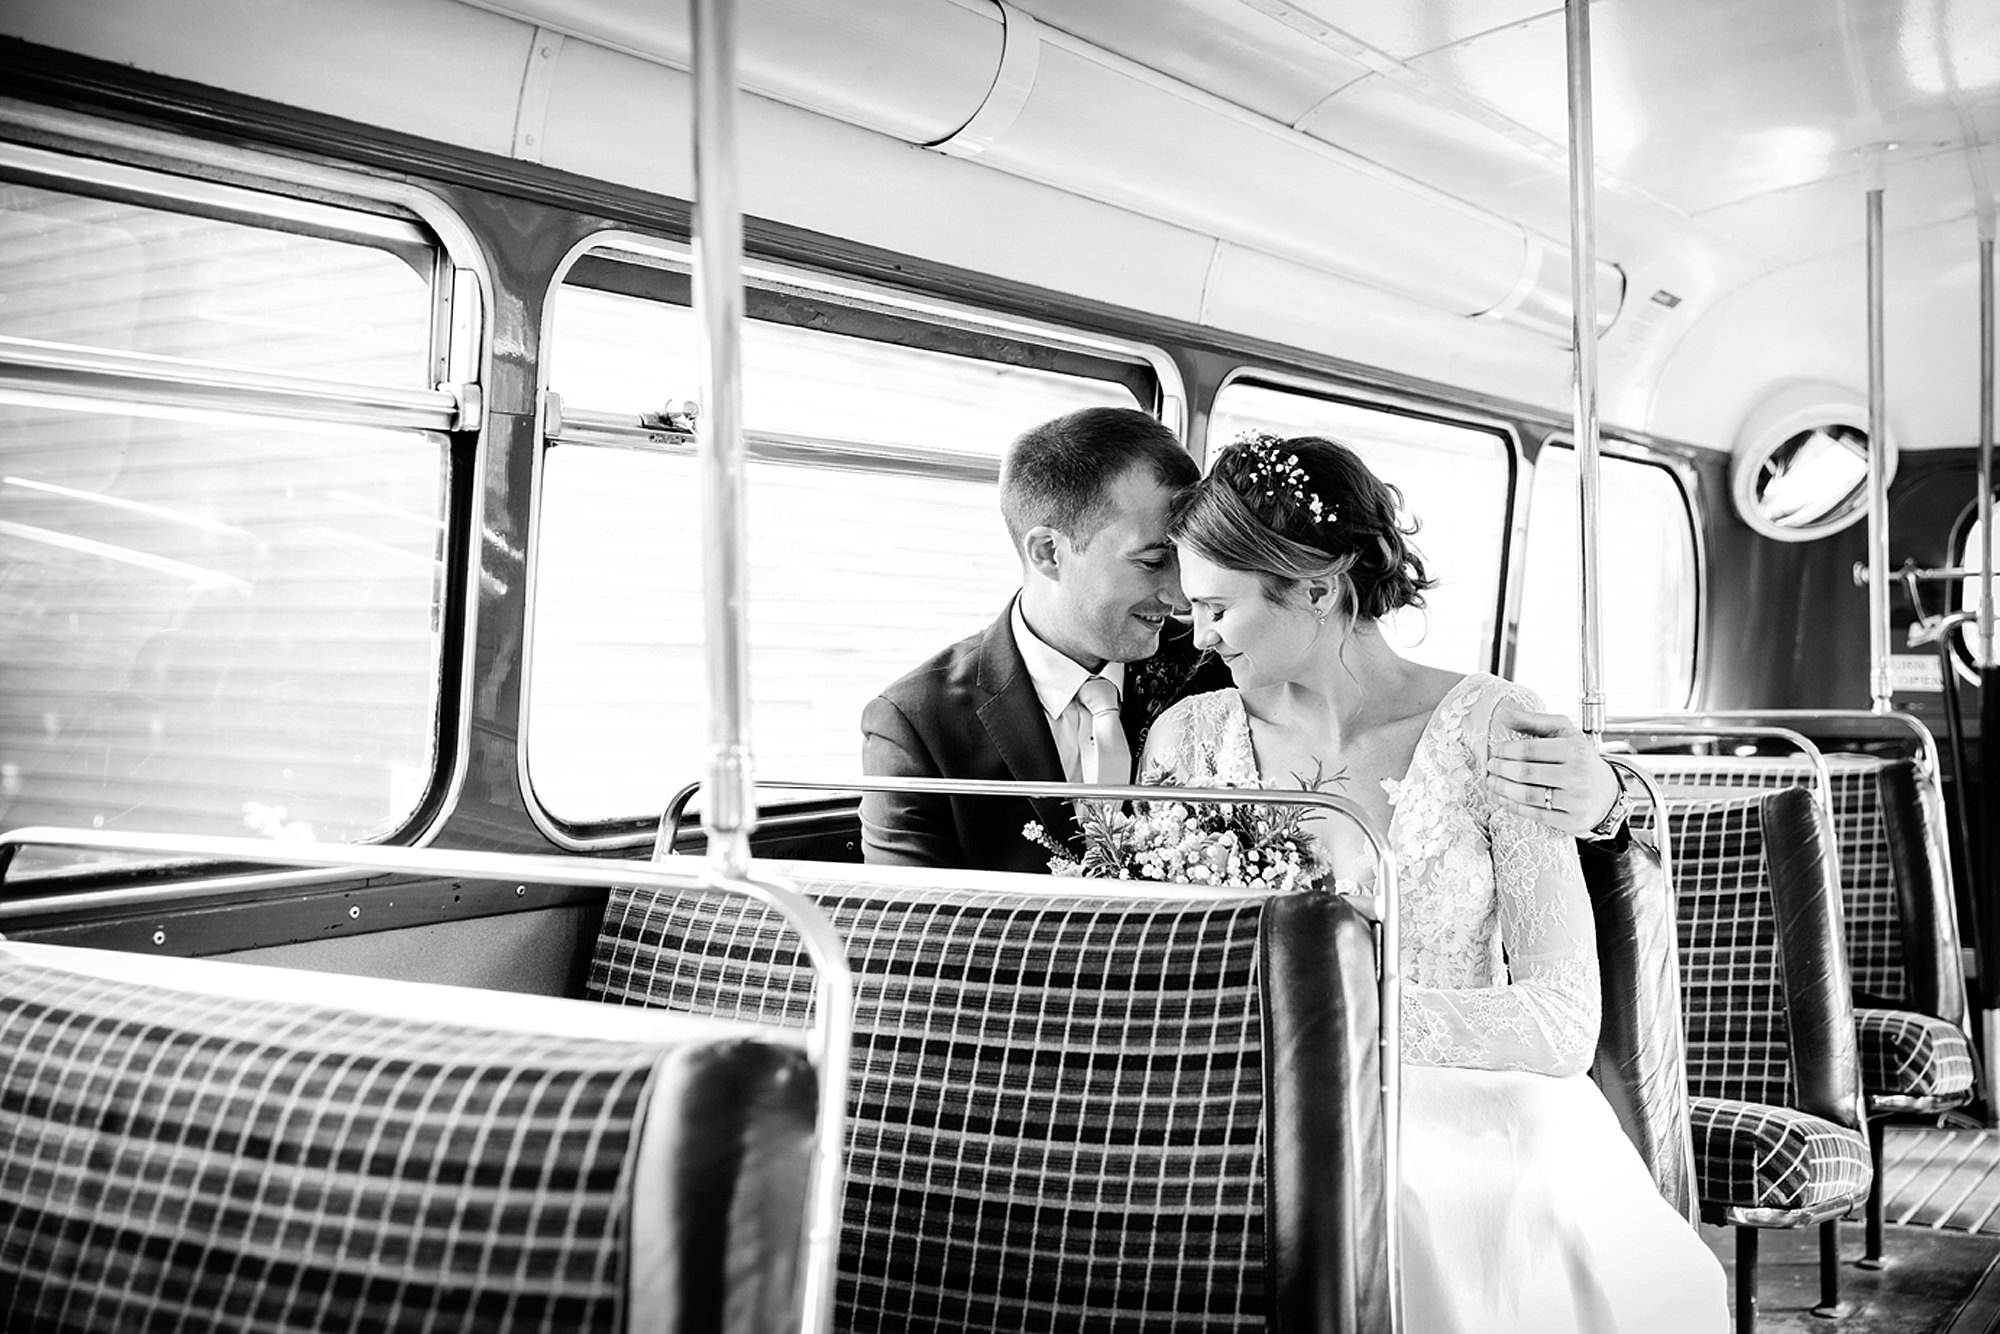 Marks Hall Estate wedding photography bride and groom together on vintage london bus